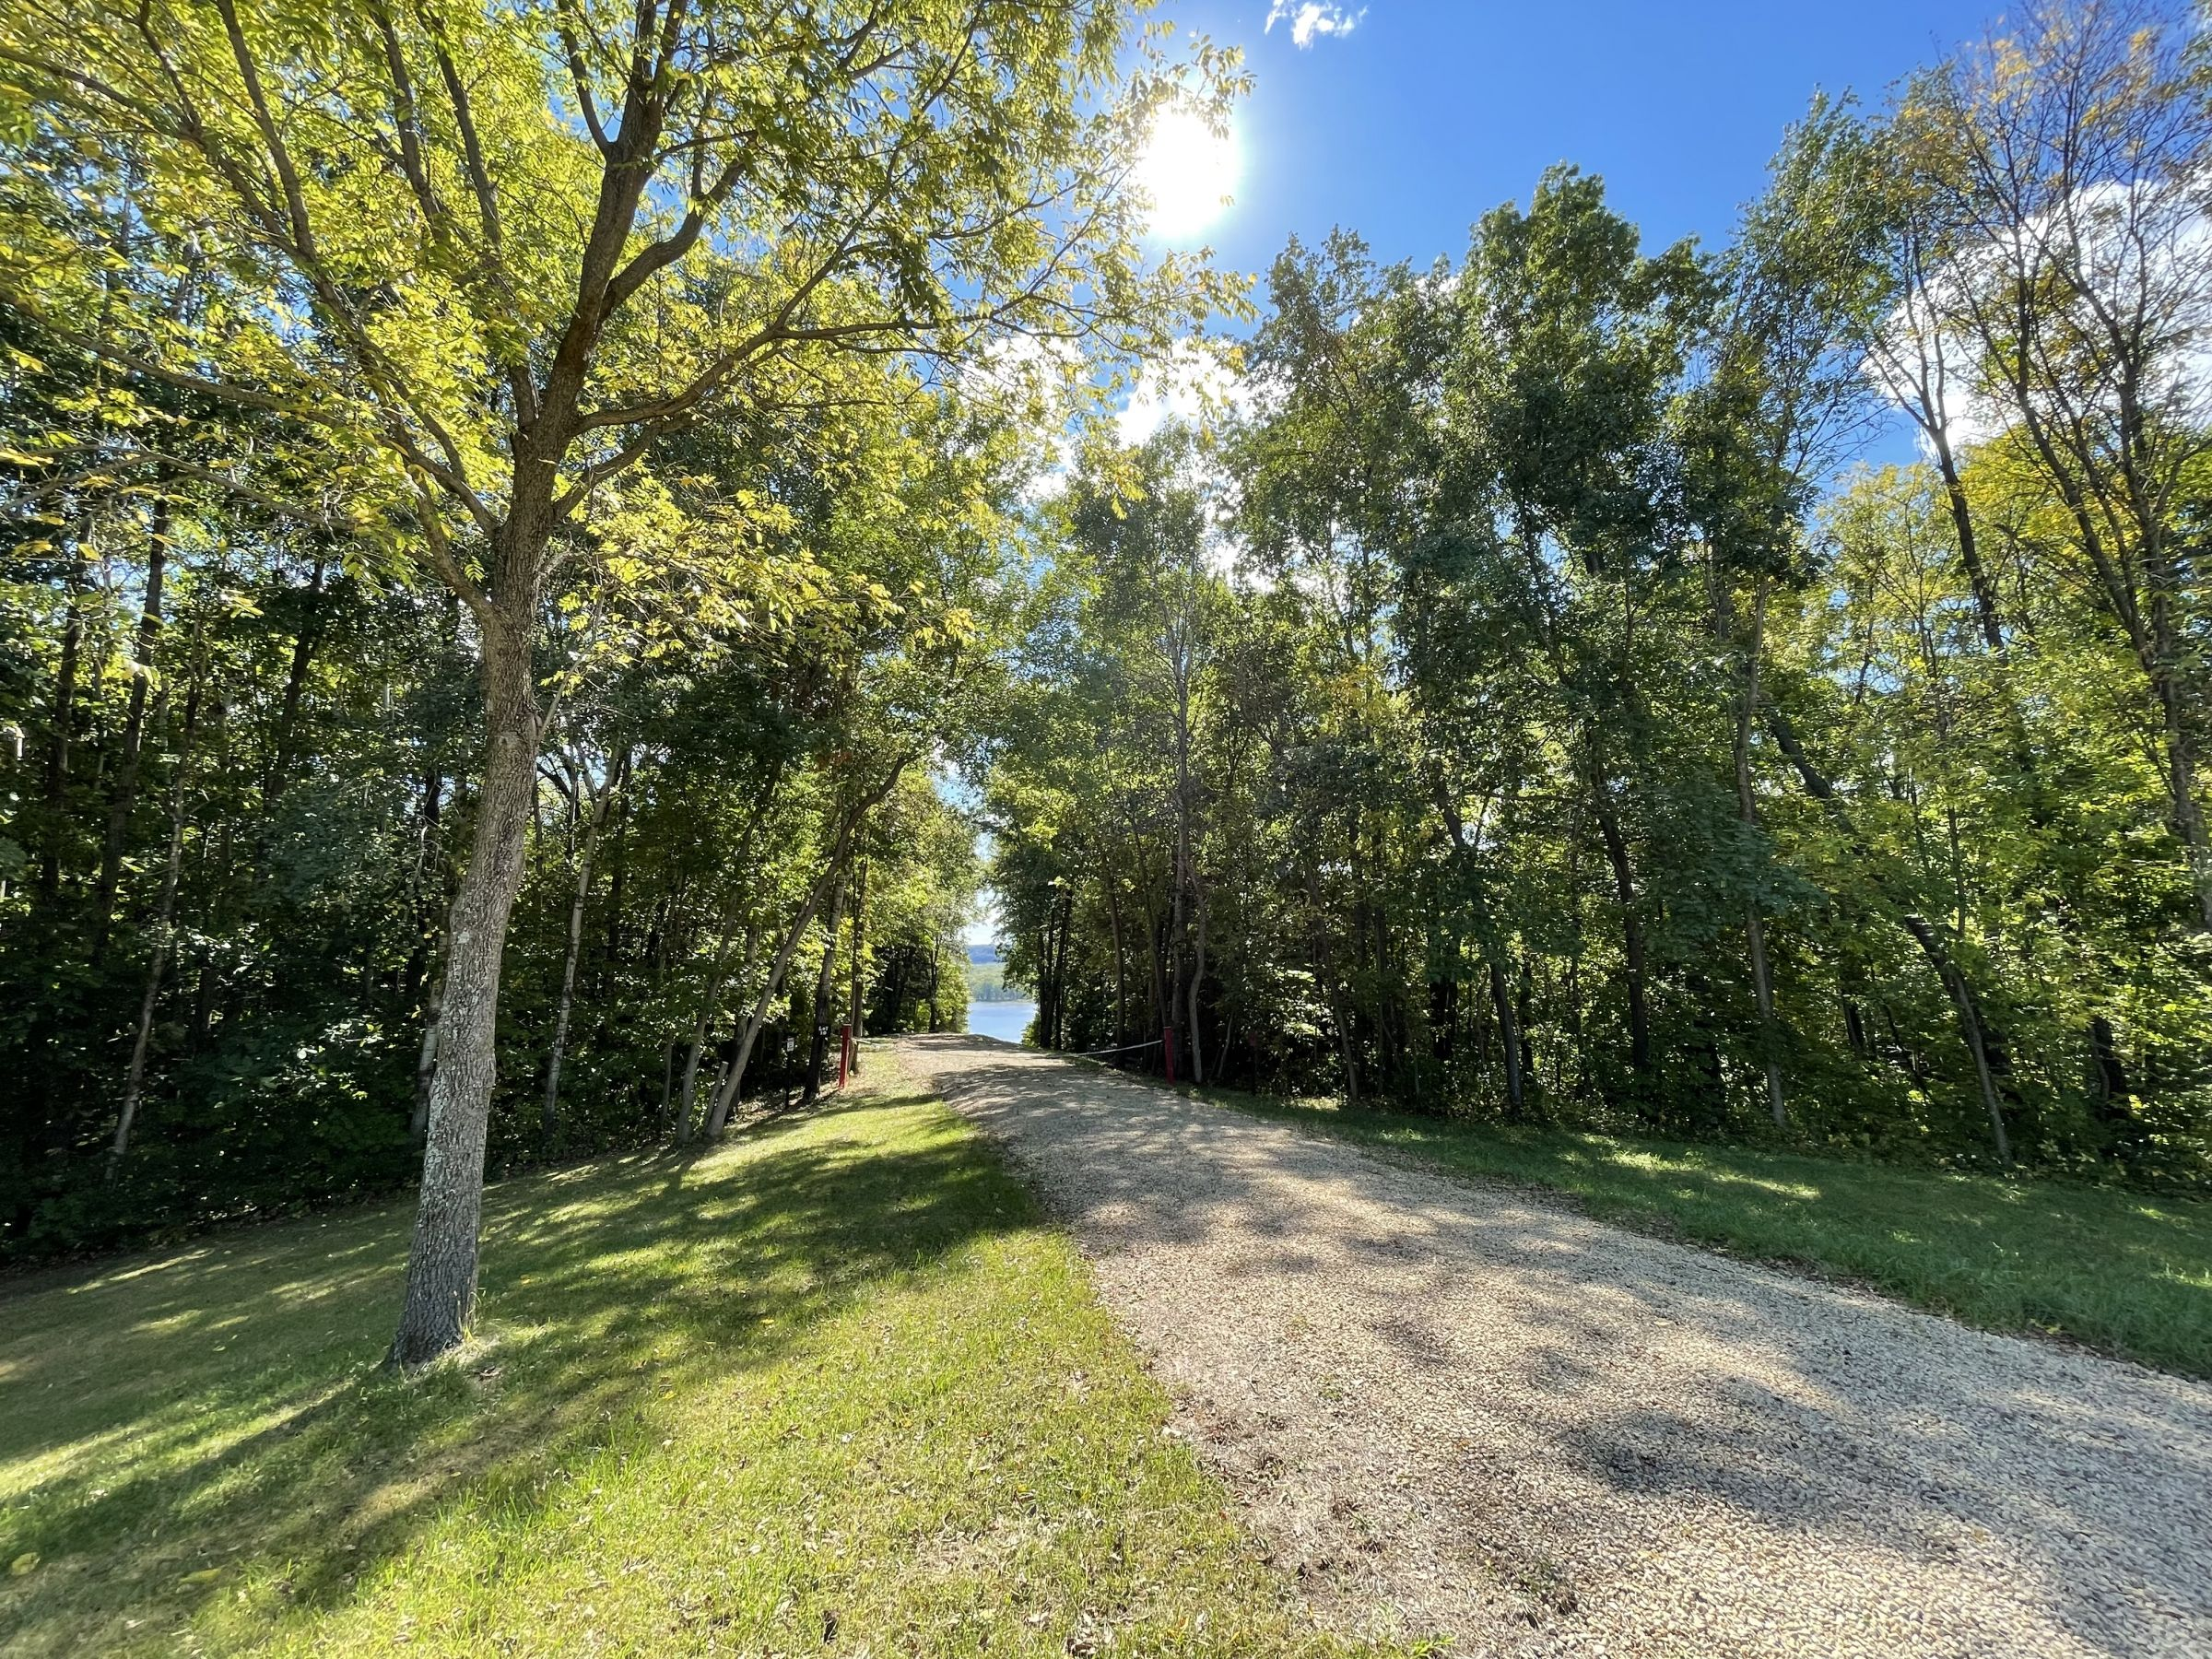 land-grant-county-wisconsin-4-acres-listing-number-15772-4-2021-09-23-020455.JPG